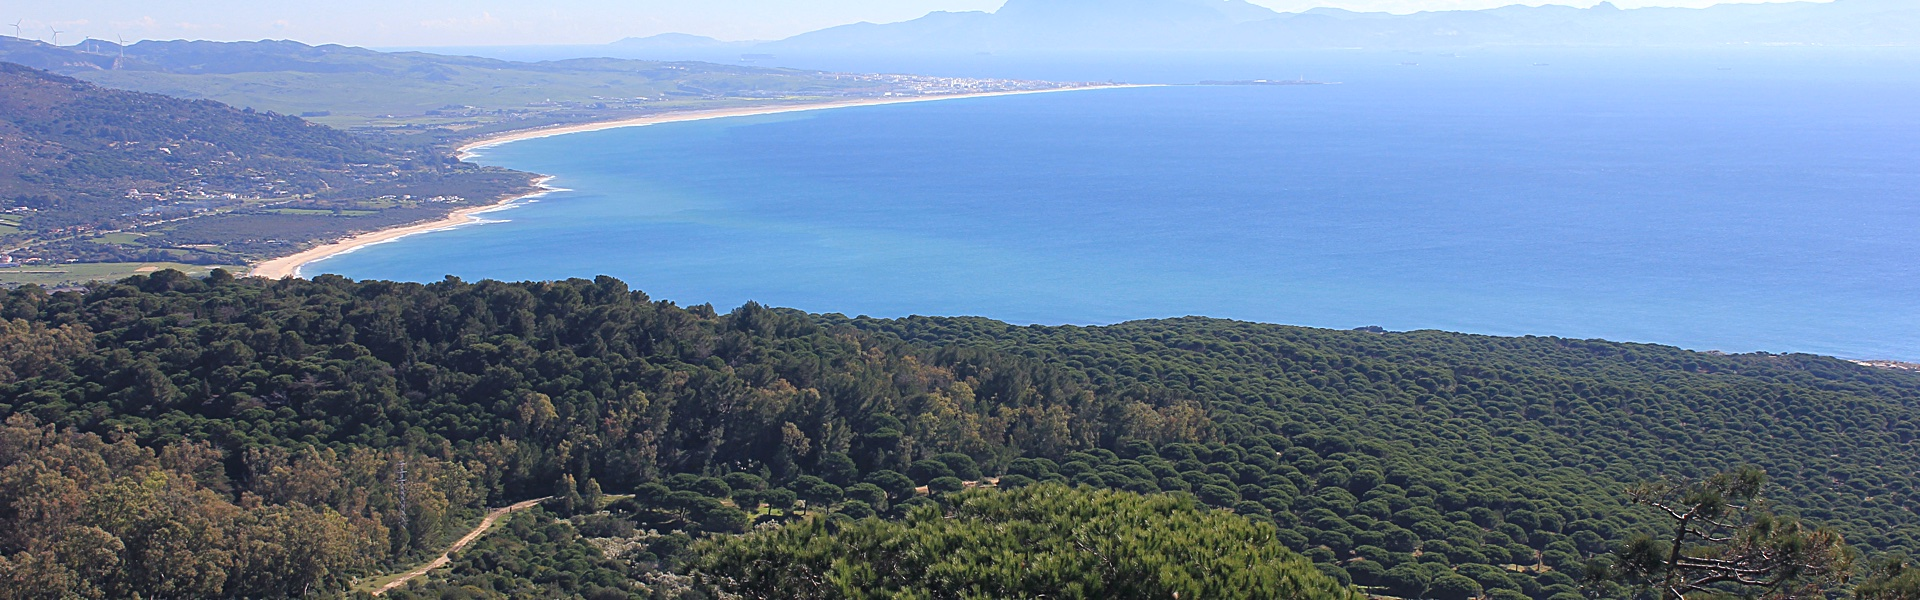 Spanje | Single wandelreis in Andalusië – Costa de la Luz